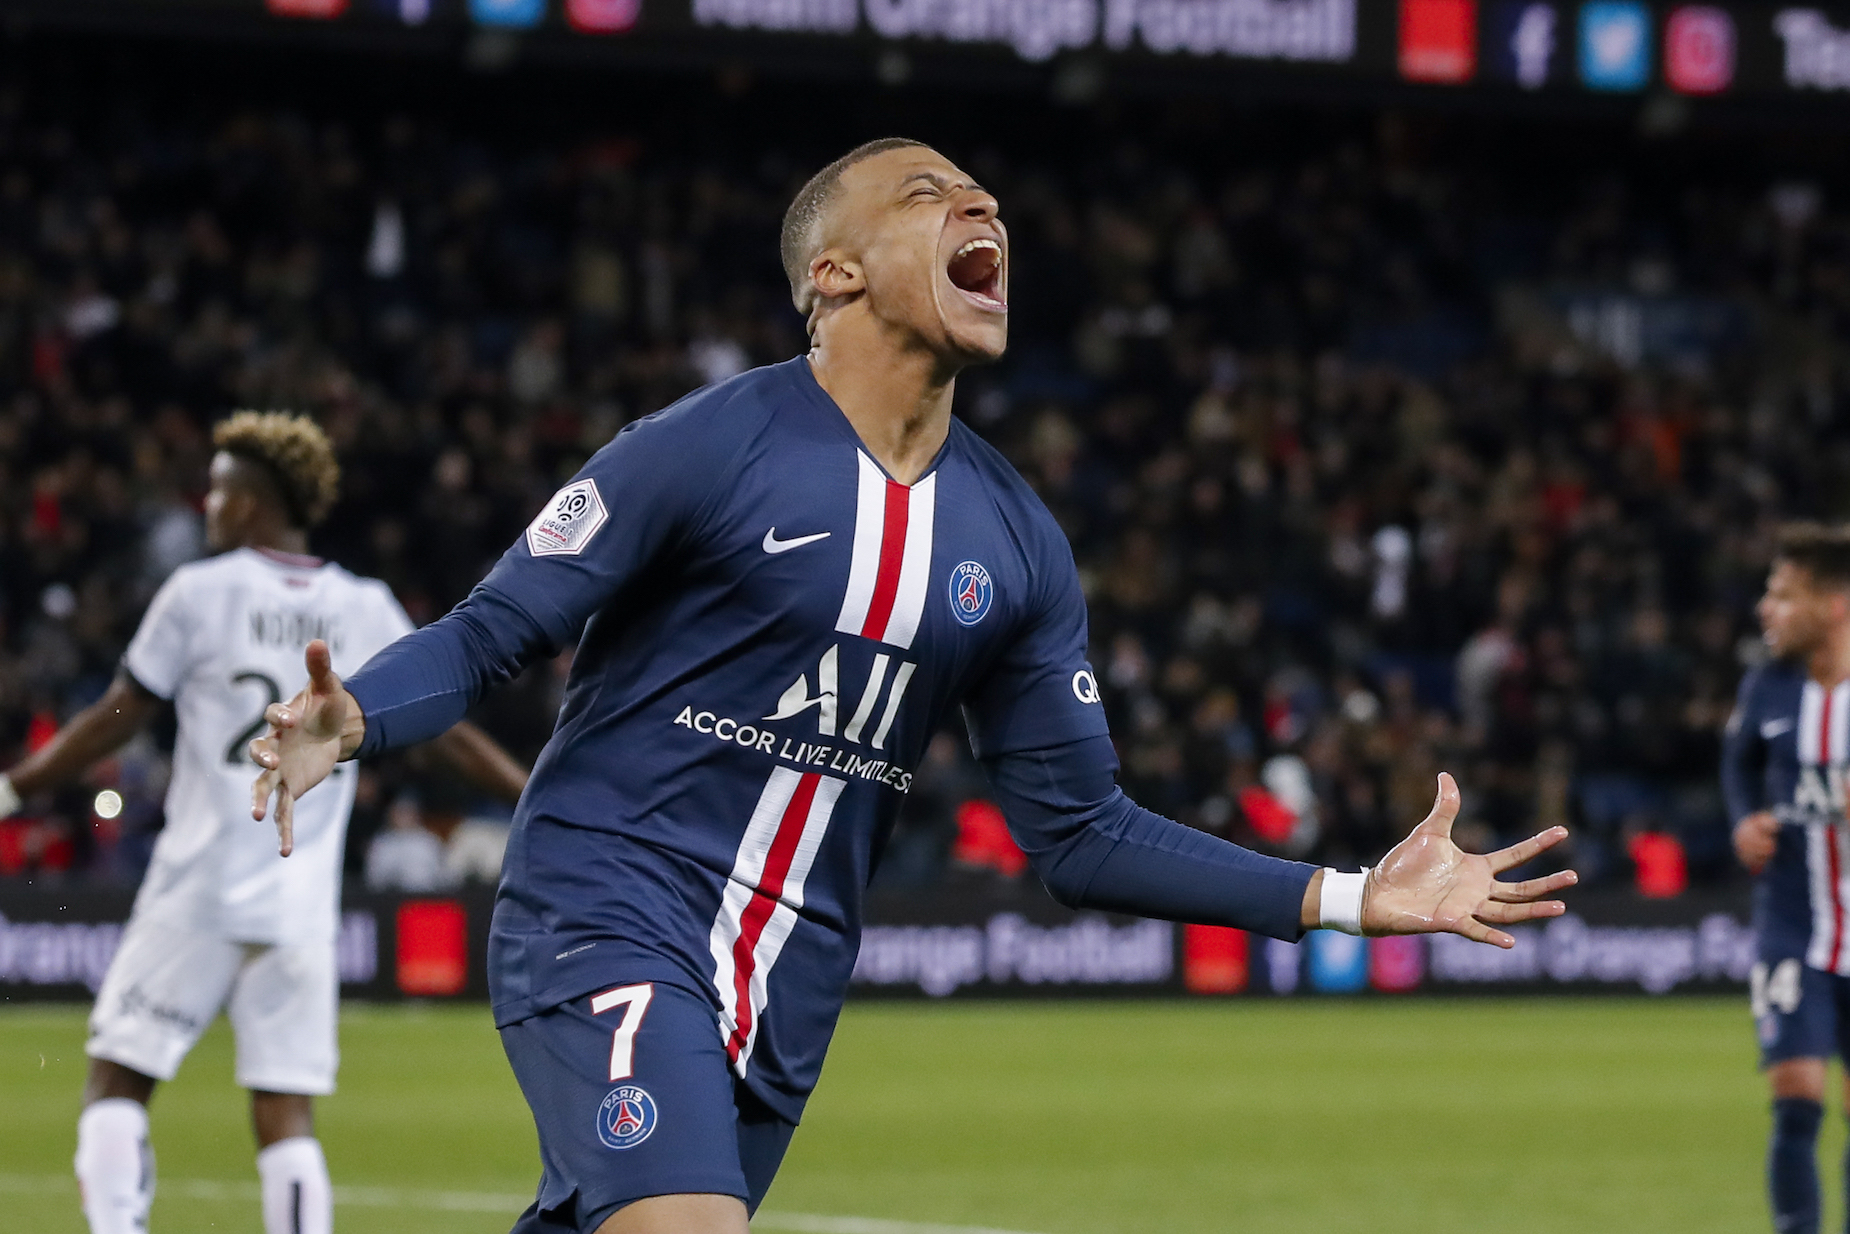 PSG star Kylian Mbappe is young, but he's also incredibly wealthy.